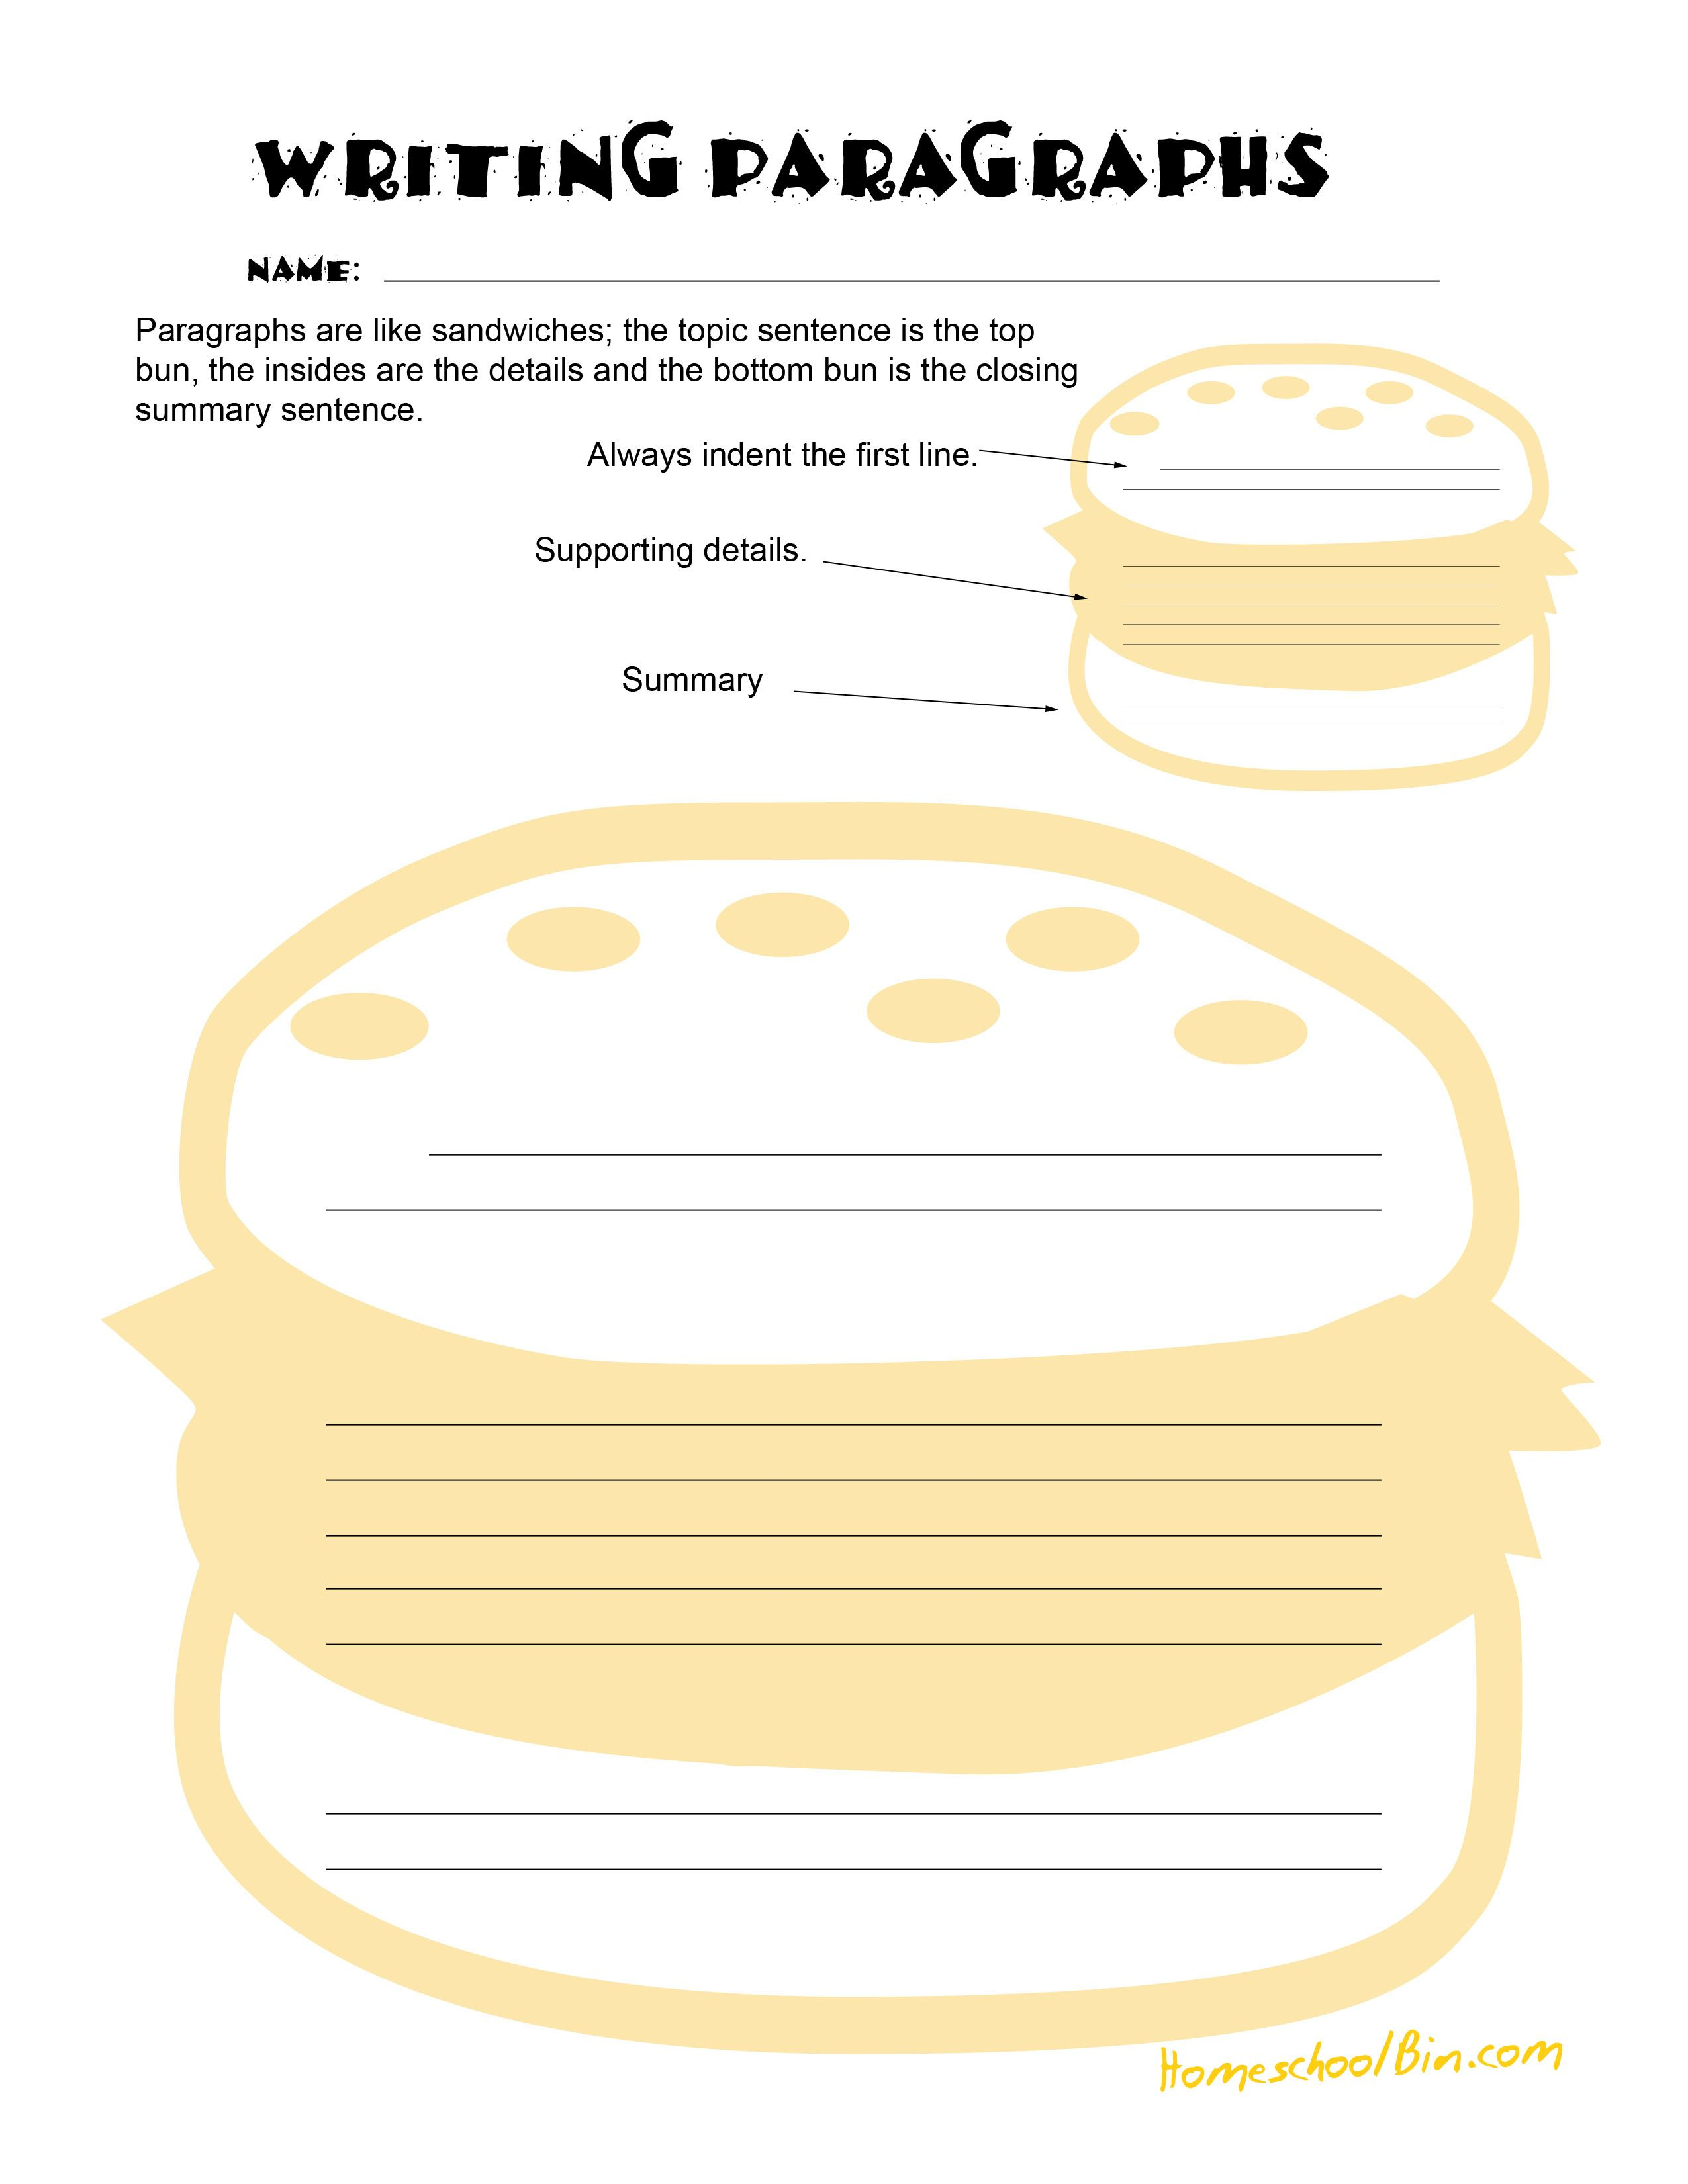 Paragraph Worksheet Sandwich Many Worksheets On Types Of Writing